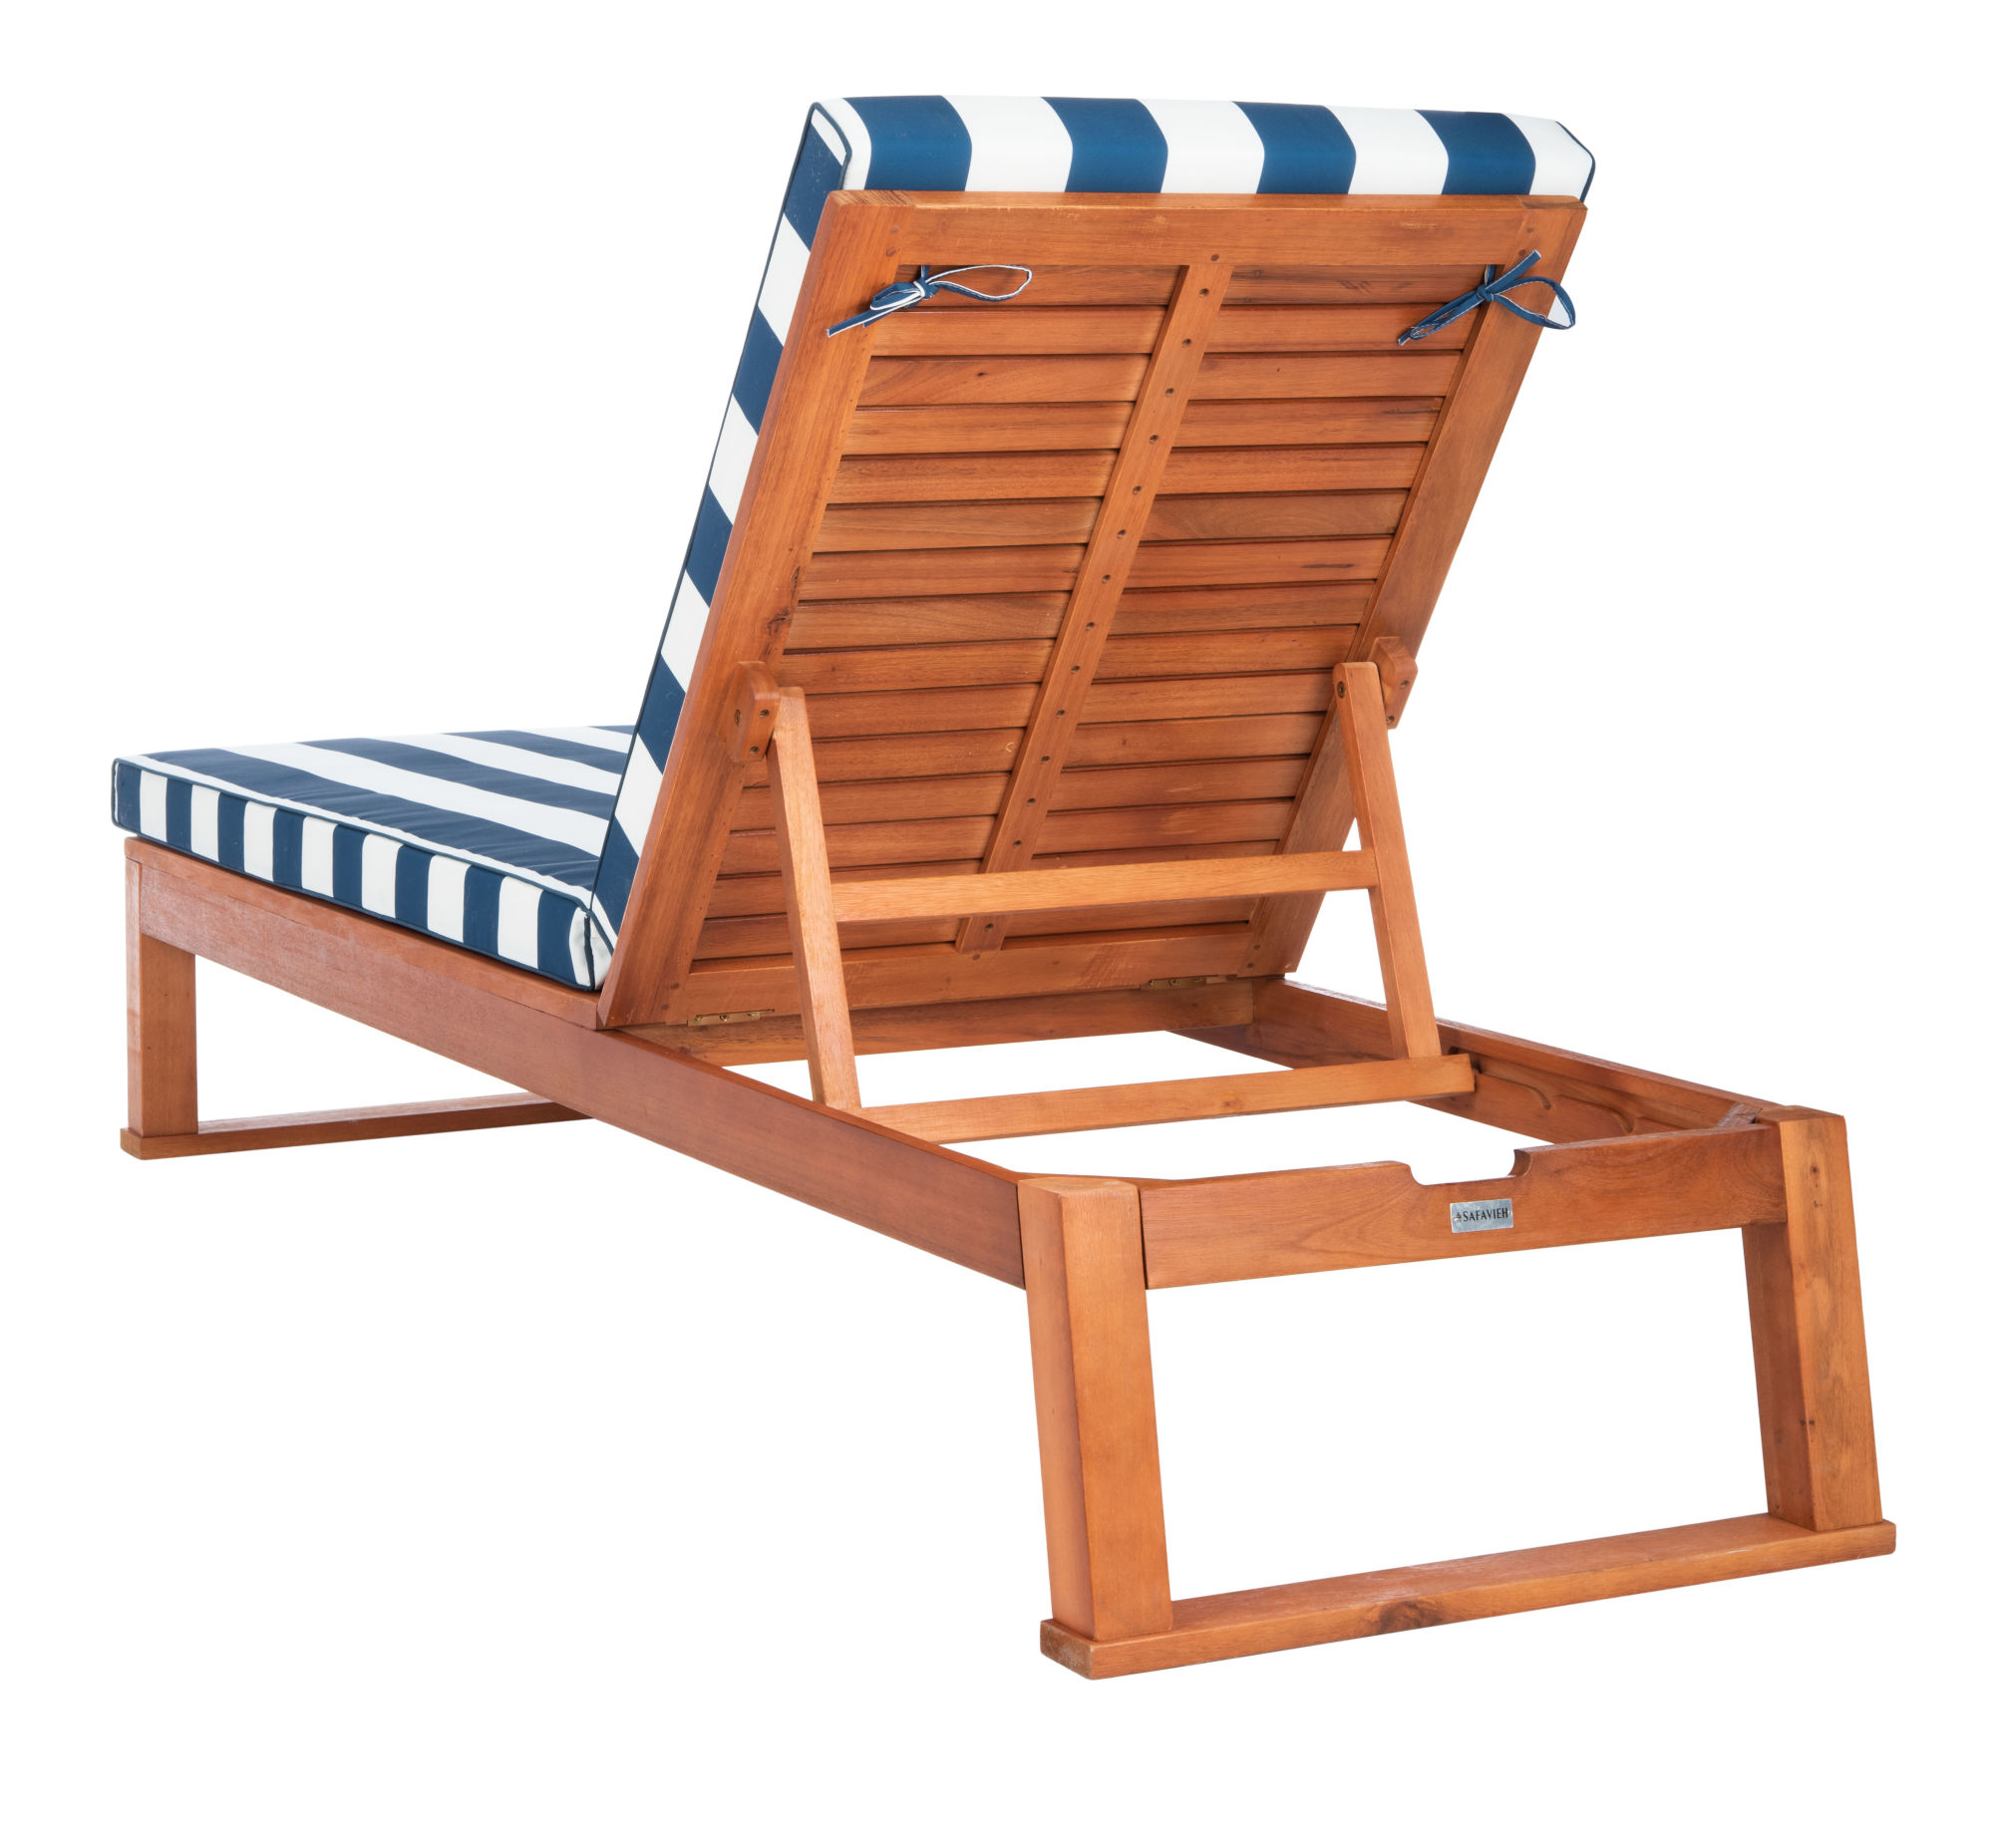 Solano Sunlounger on Safavieh Outdoor Living Solano Sunlounger id=67470